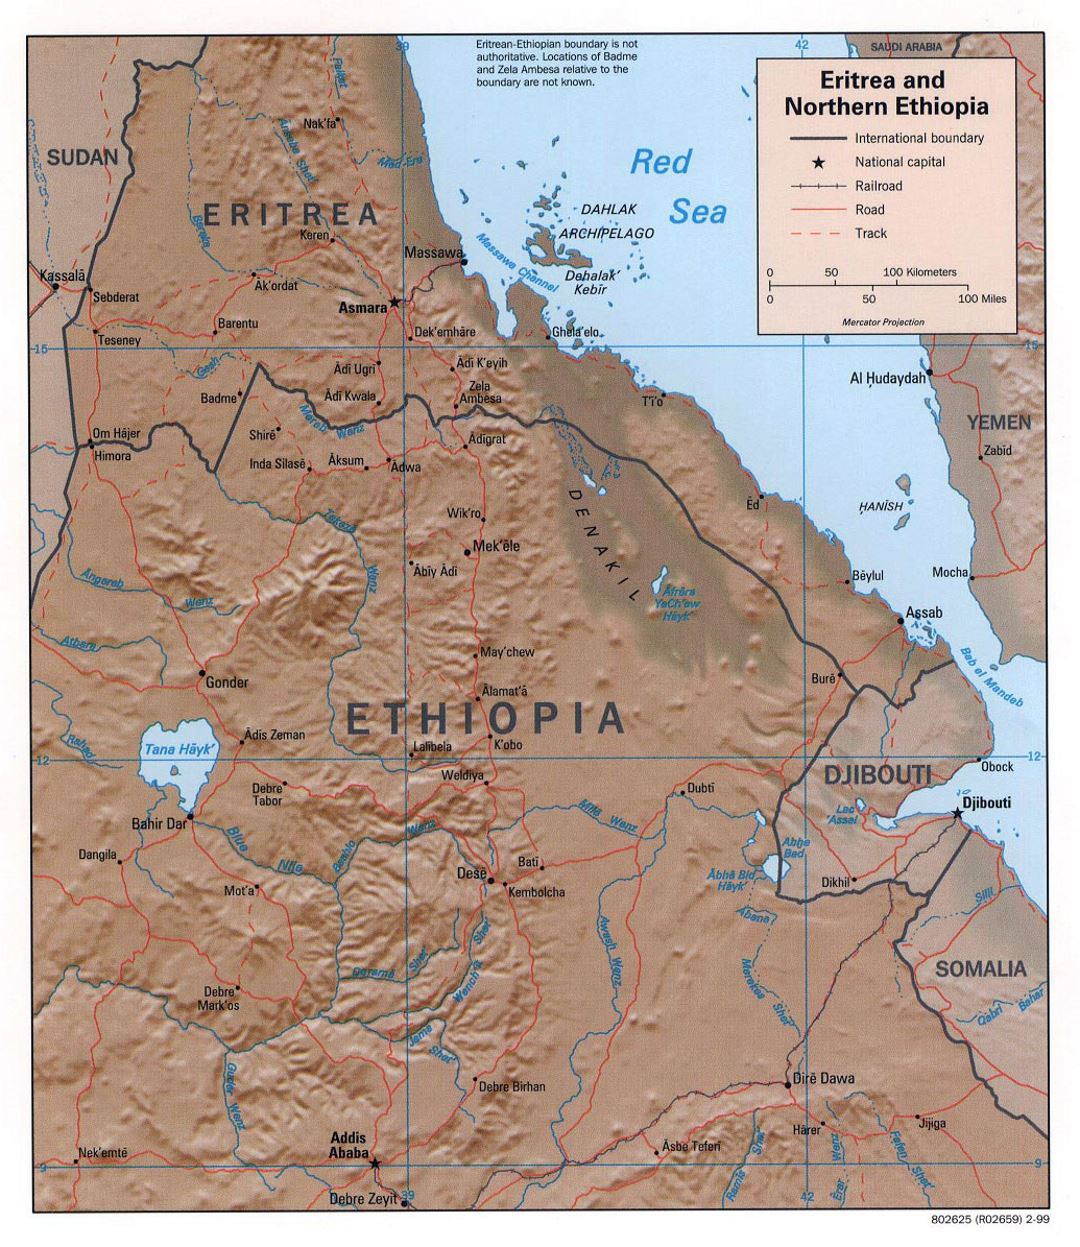 Detailed political map of Eritrea and Northern Ethiopia with relief, roads, railroads and major cities - 1999